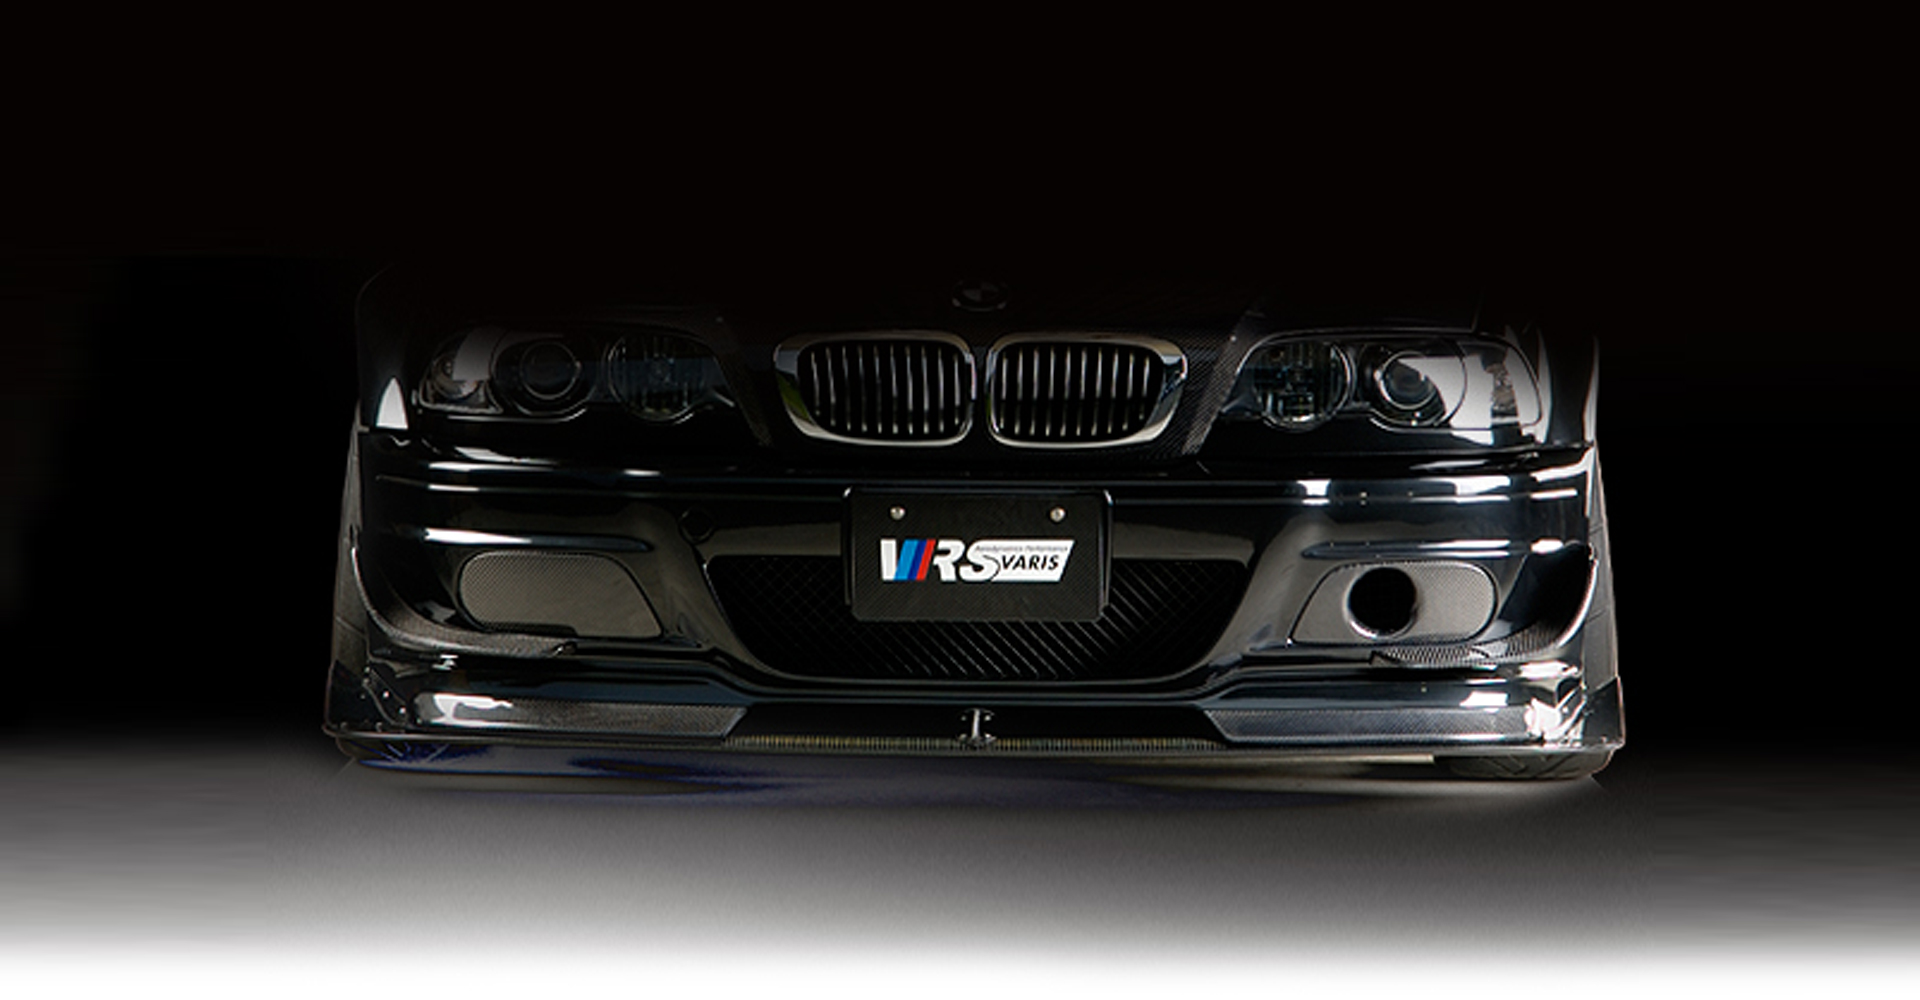 Vrs Bmw E46 M3 Circuit Version Csl Air Duct&cover